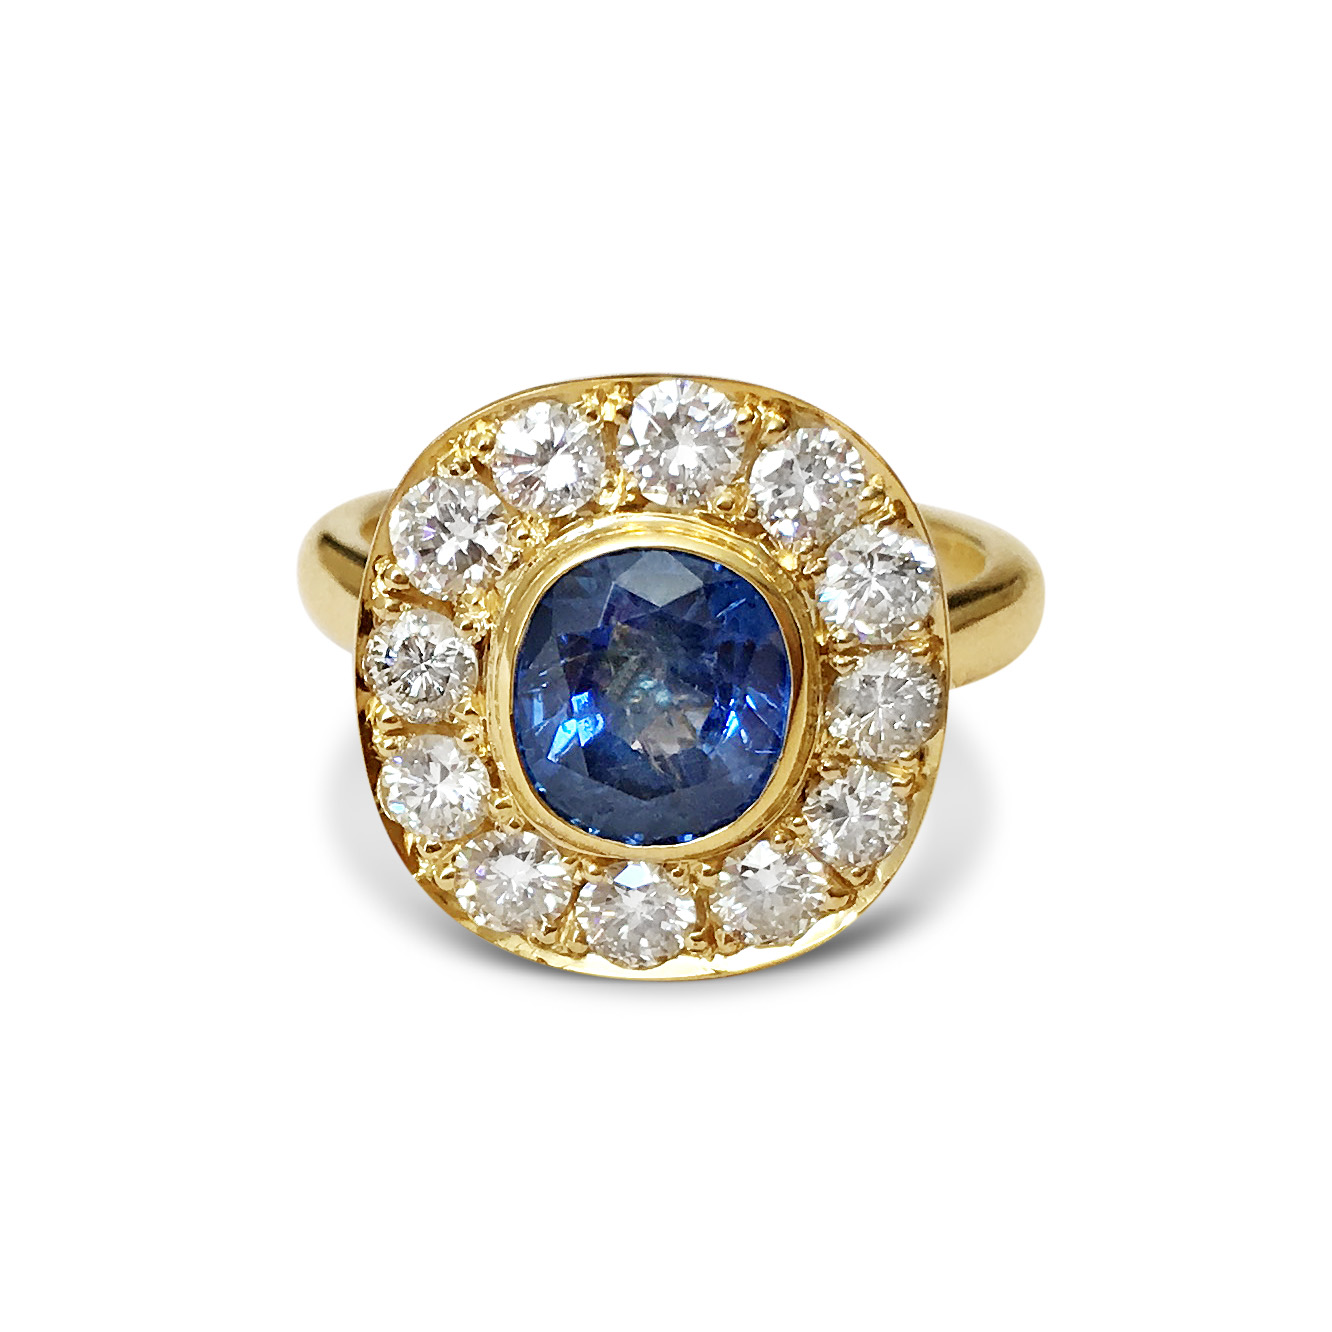 Sapphire-and-diamond-cluster-engagement-ring-in-yellow-gold.jpg